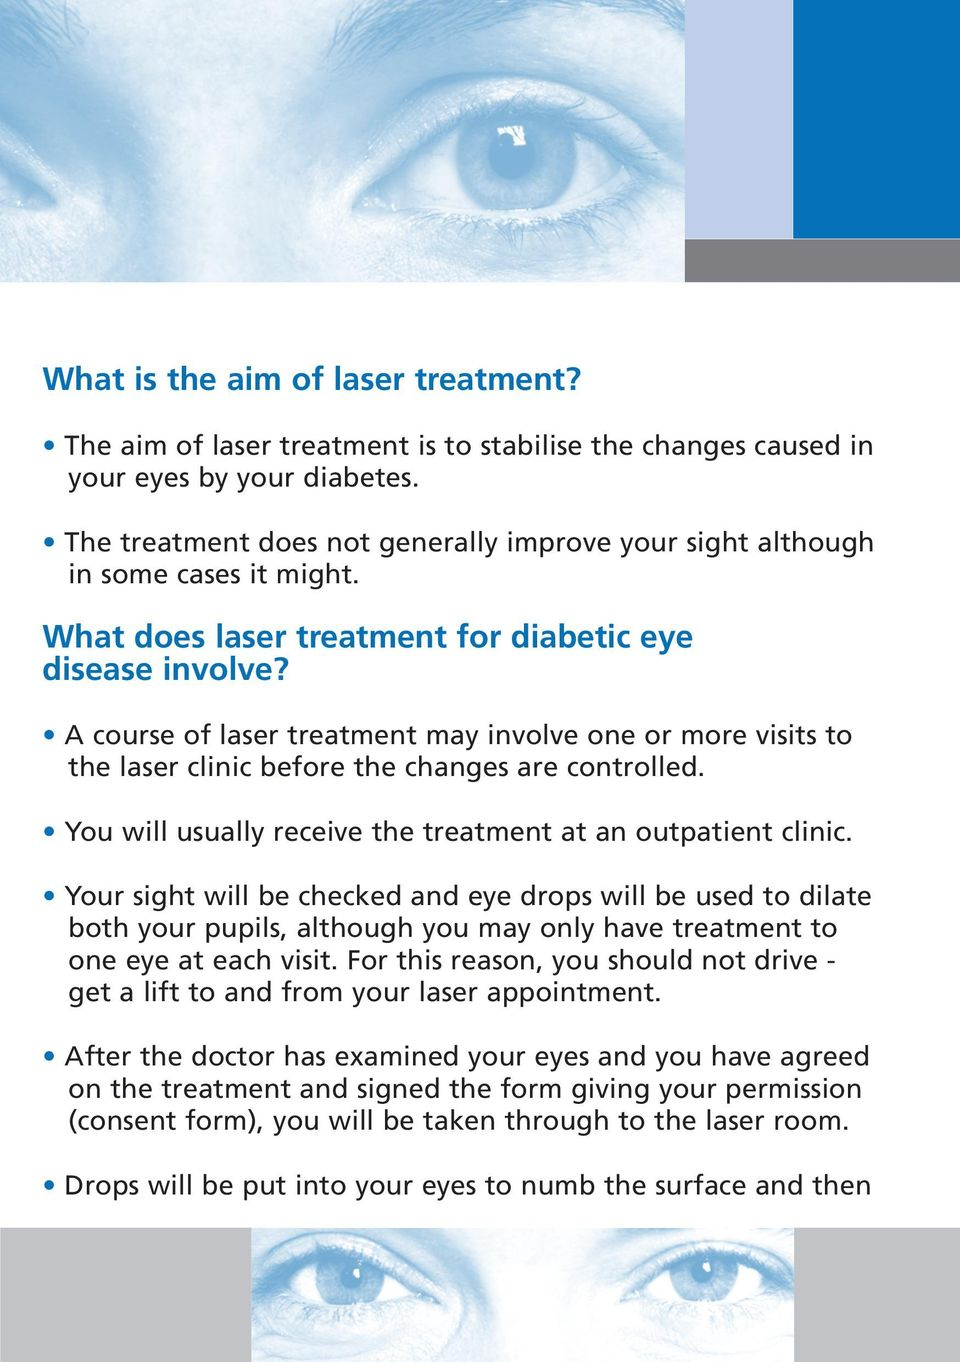 A course of laser treatment may involve one or more visits to the laser clinic before the changes are controlled. You will usually receive the treatment at an outpatient clinic.